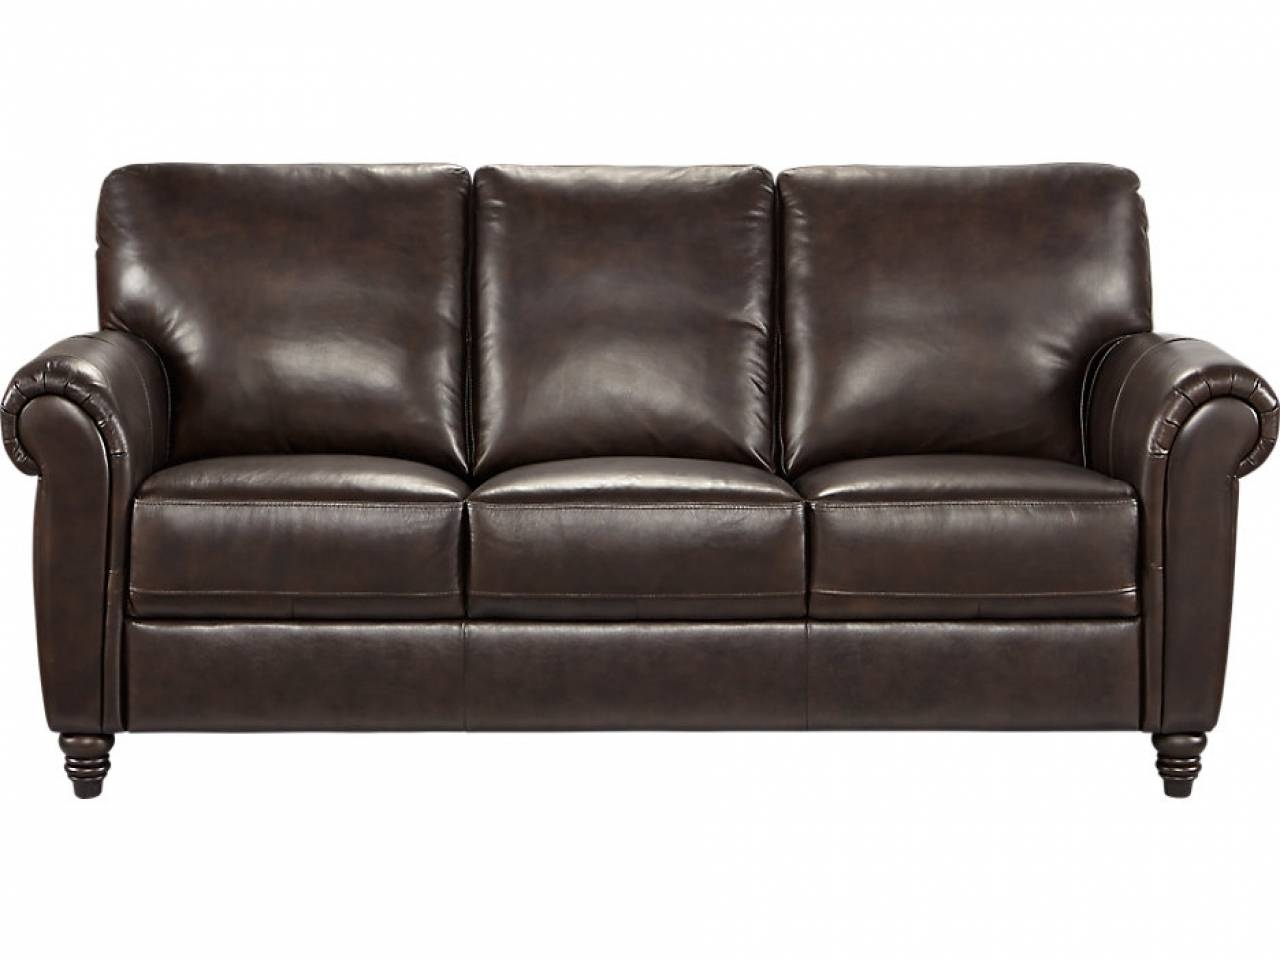 Leather Furniture Colors, Leather Sofas Old-Fashioned Leather Sofa intended for Old Fashioned Sofas (Image 8 of 30)